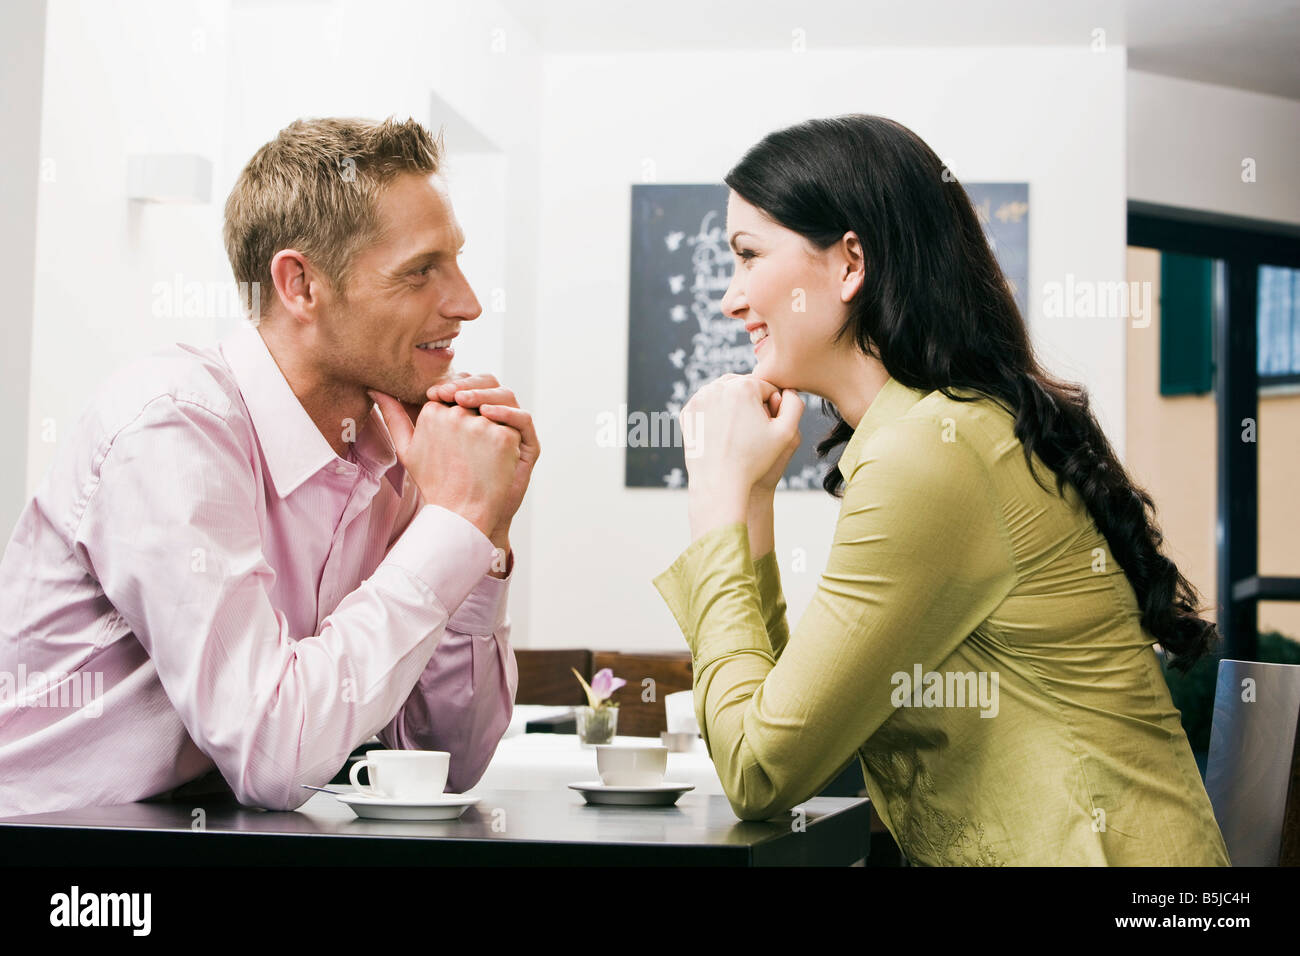 young couple at cafe flirting with each other - Stock Image